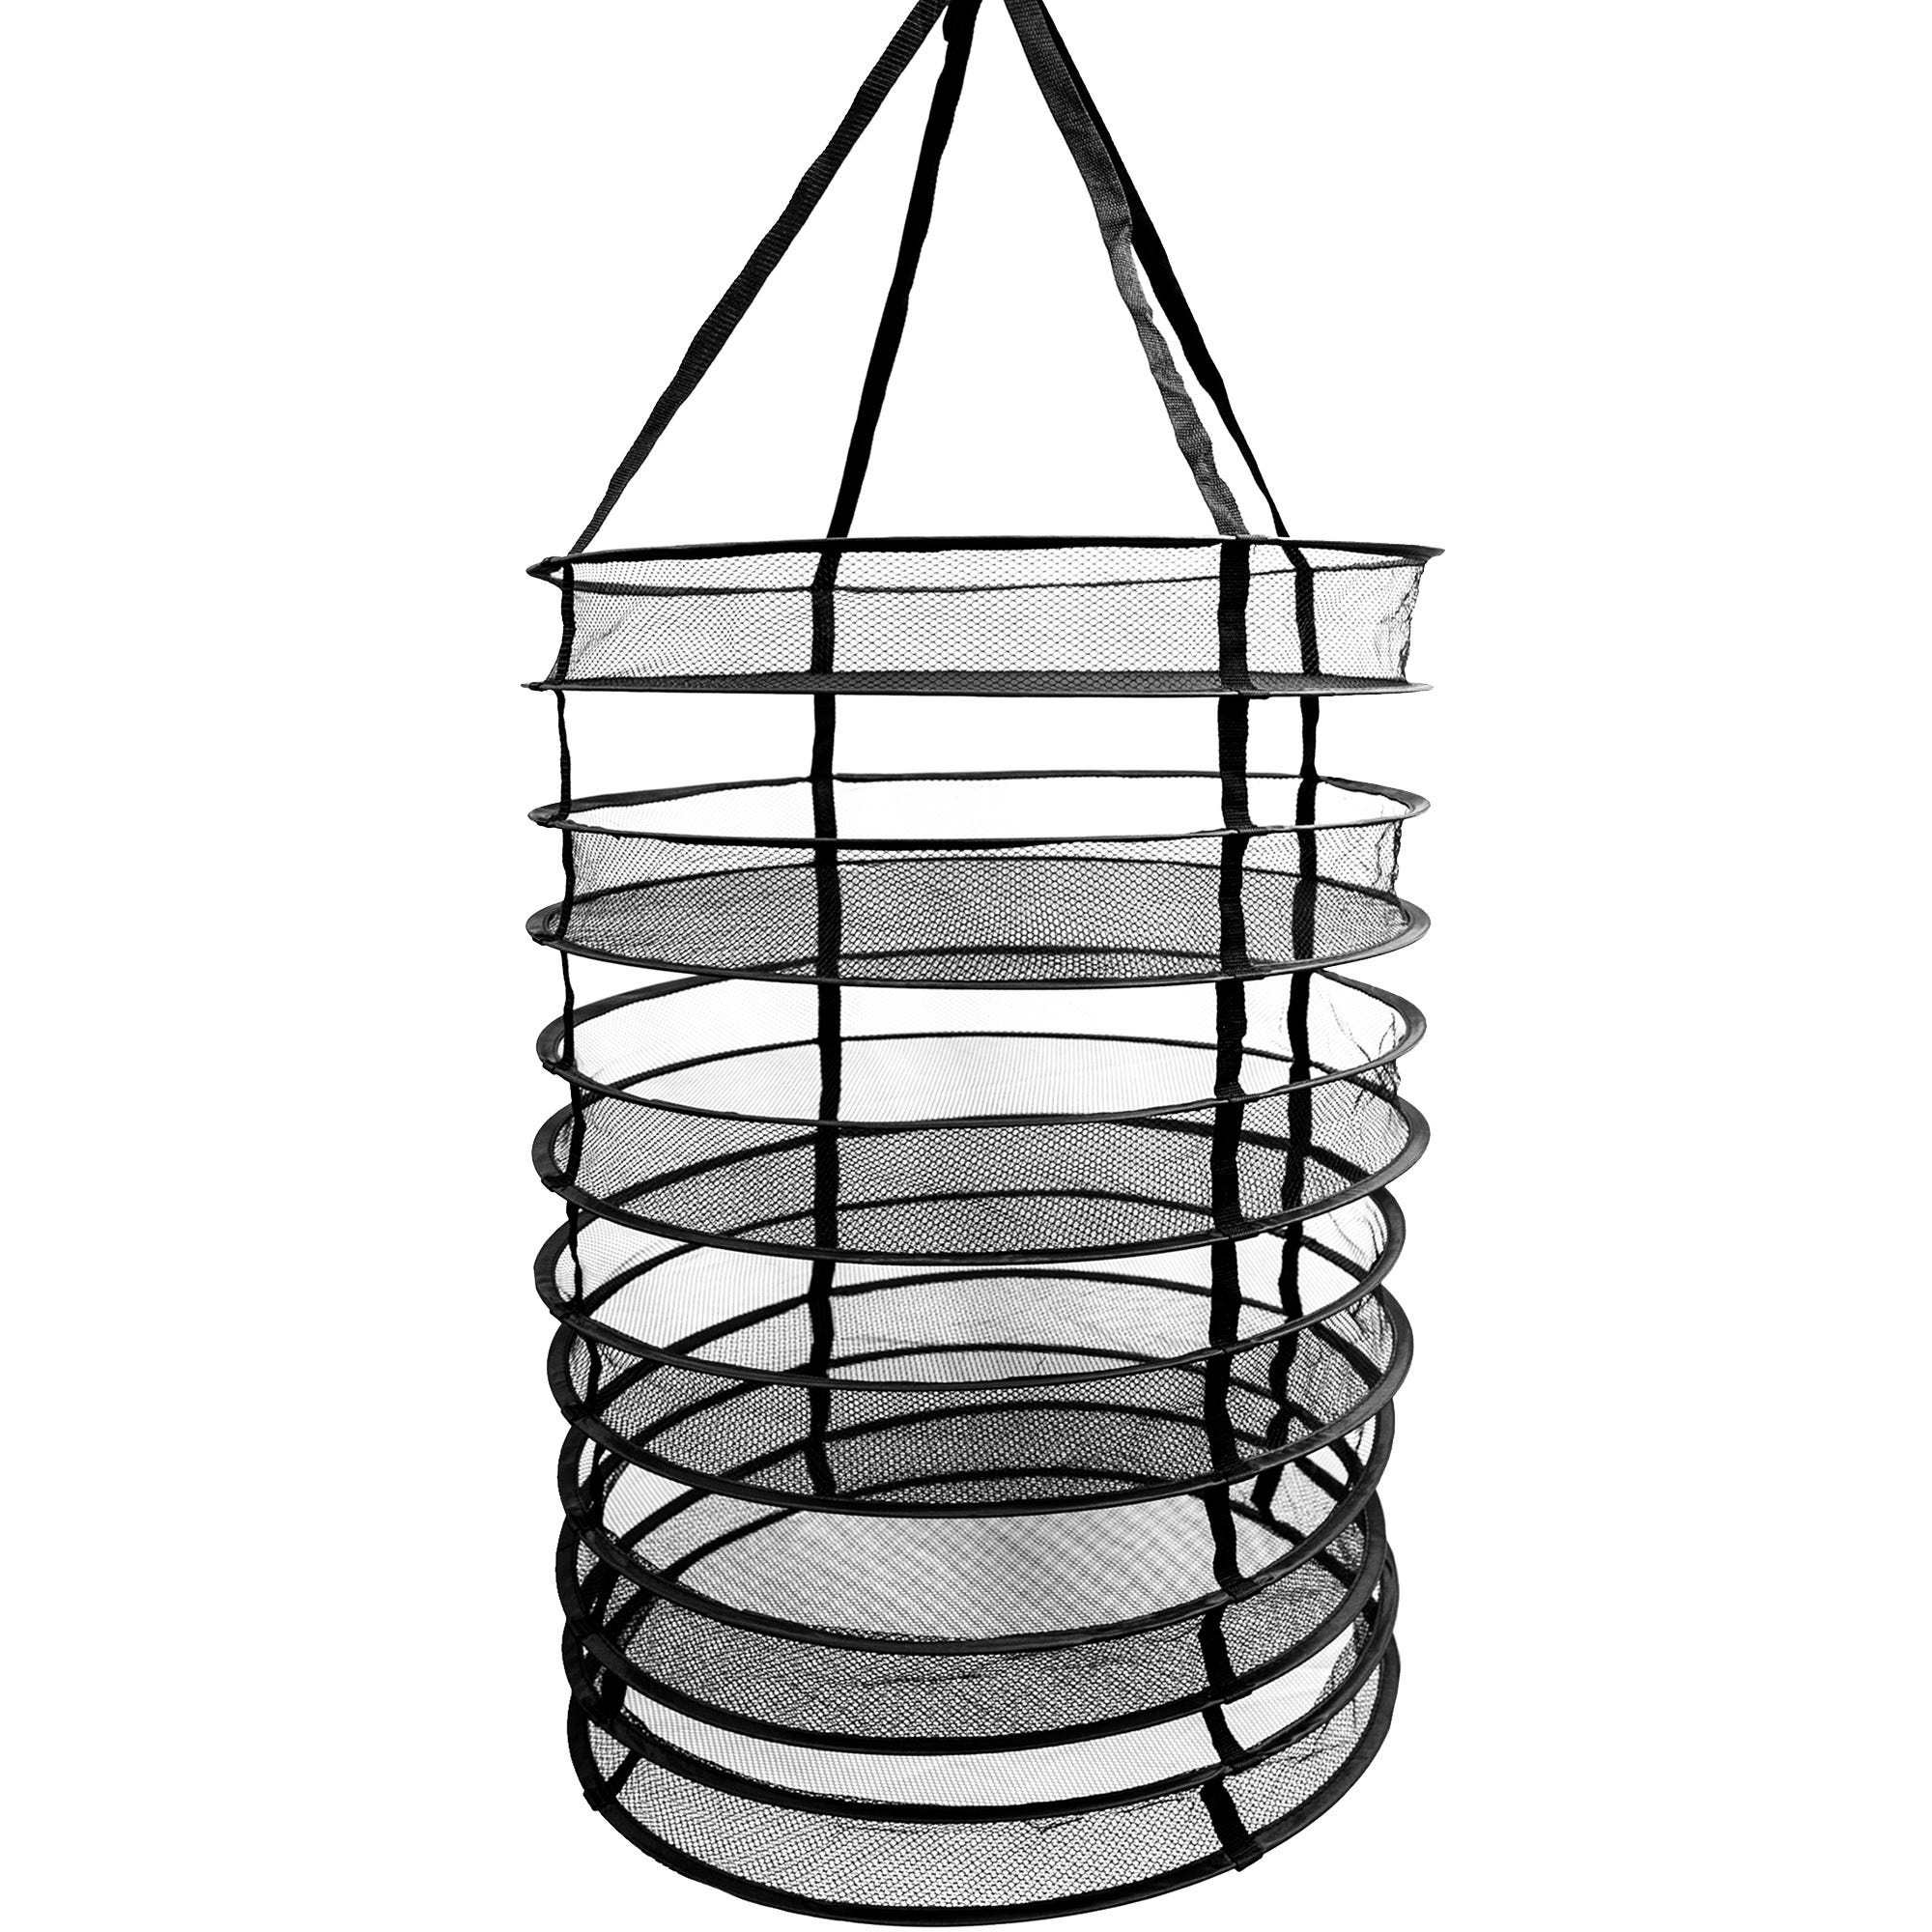 Photograph of Common Culture 24in Collapsible Hanging Herb Drying Rack System